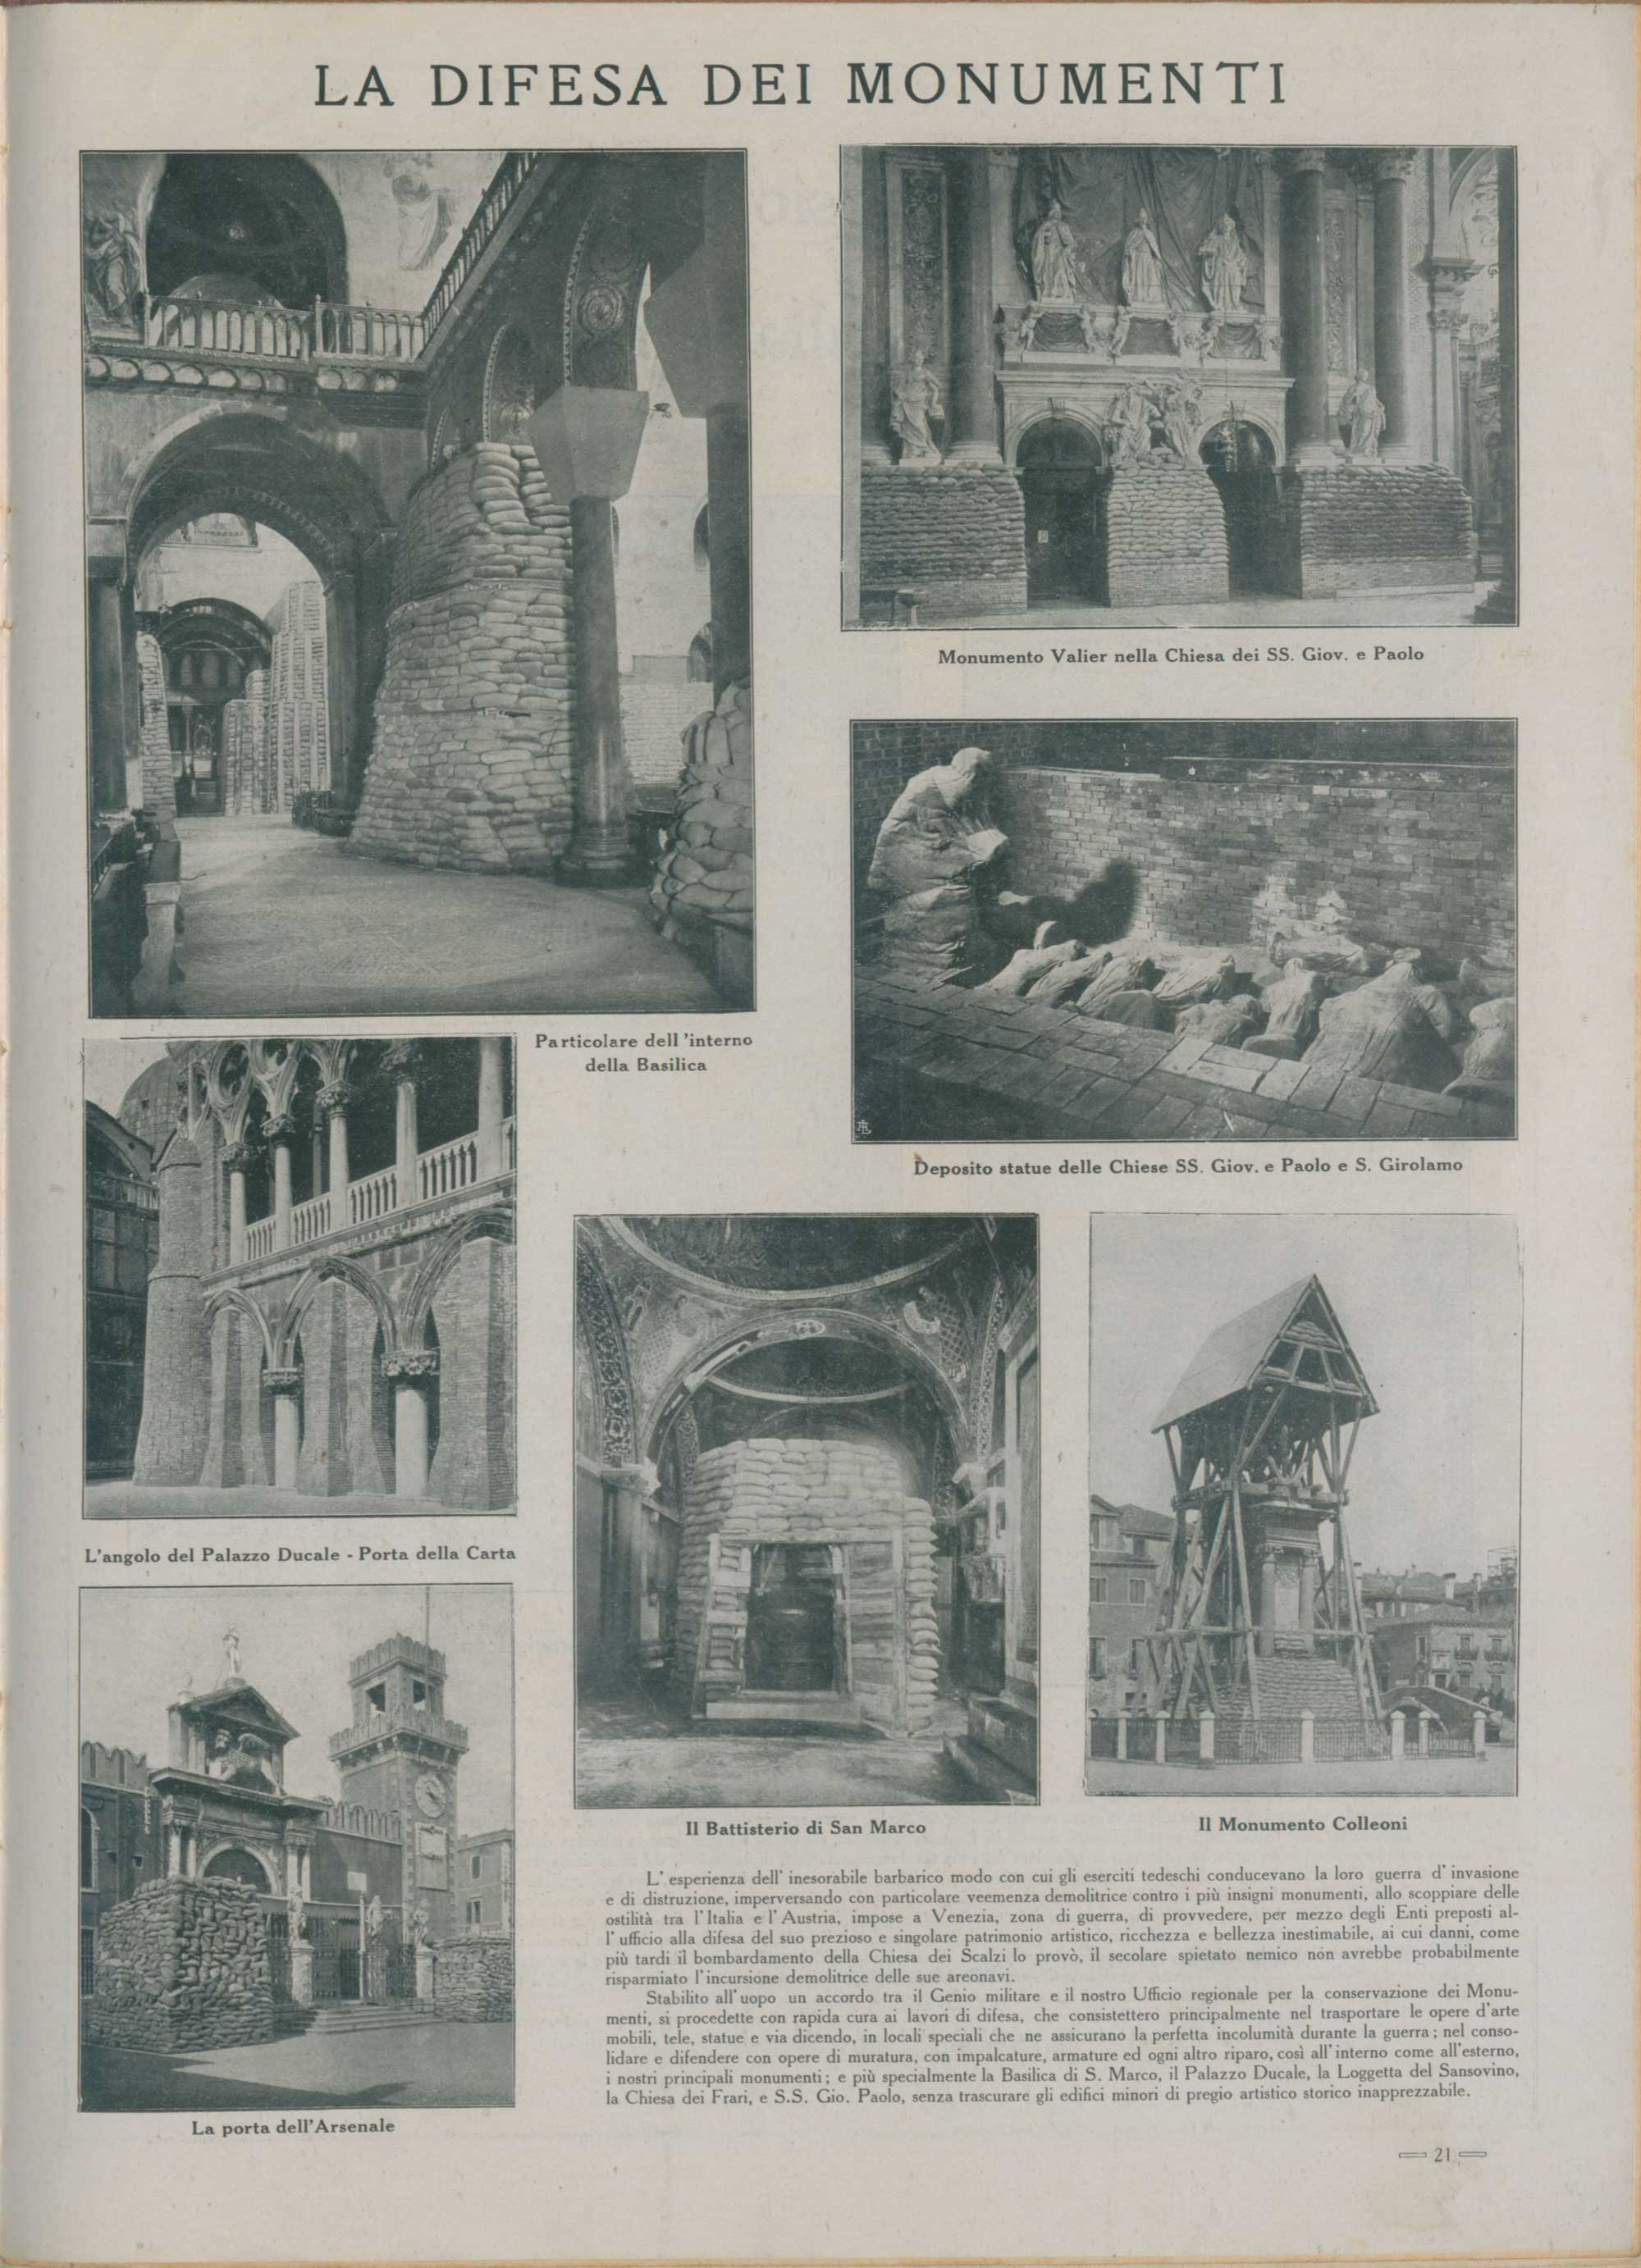 Venice in the war. The protection of monuments